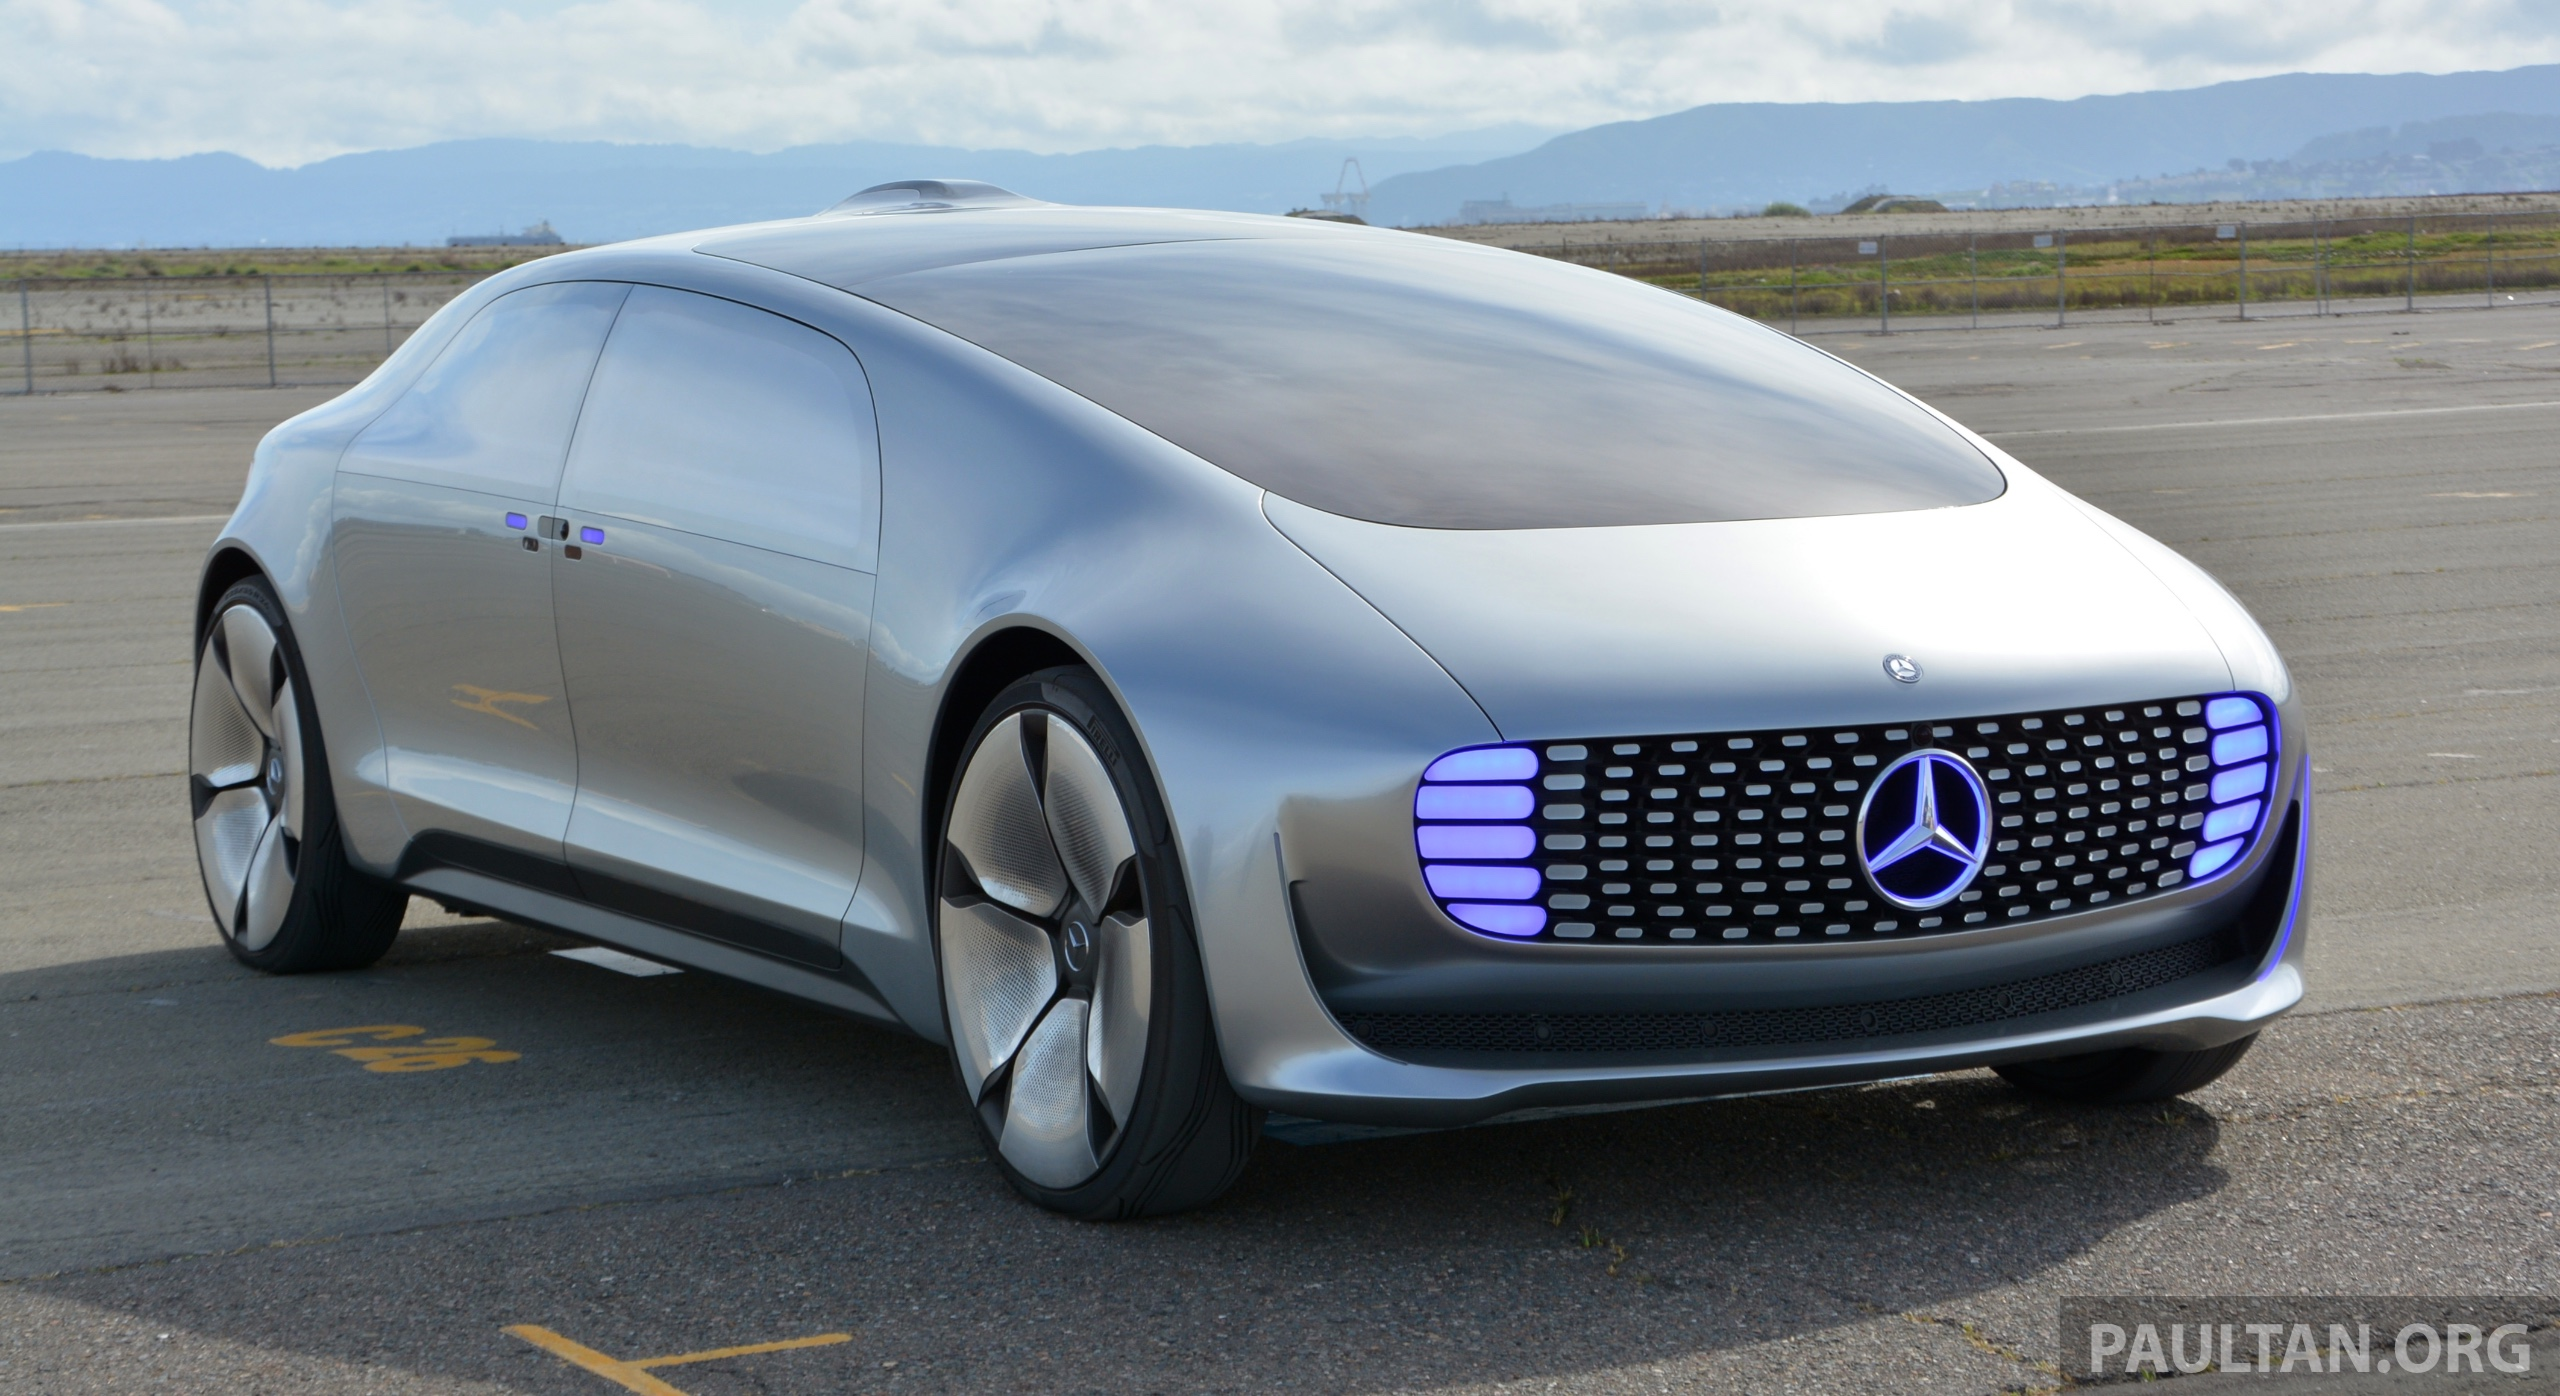 DRIVEN: Mercedes Benz F 015 Luxury In Motion In SF Image #322151